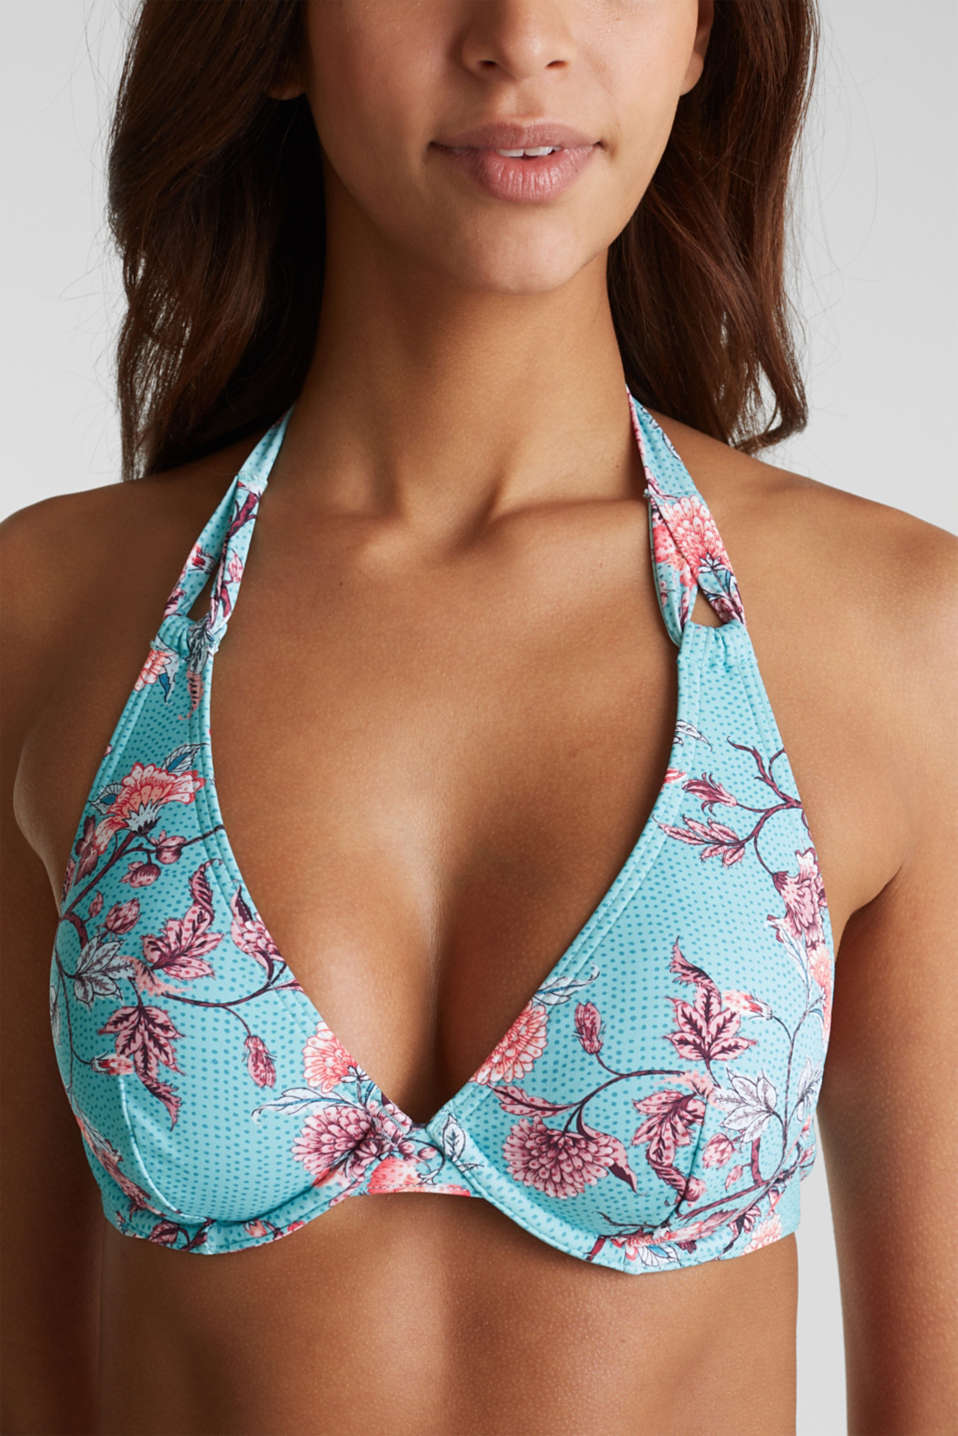 Unpadded underwire top with flowers, TURQUOISE, detail image number 2